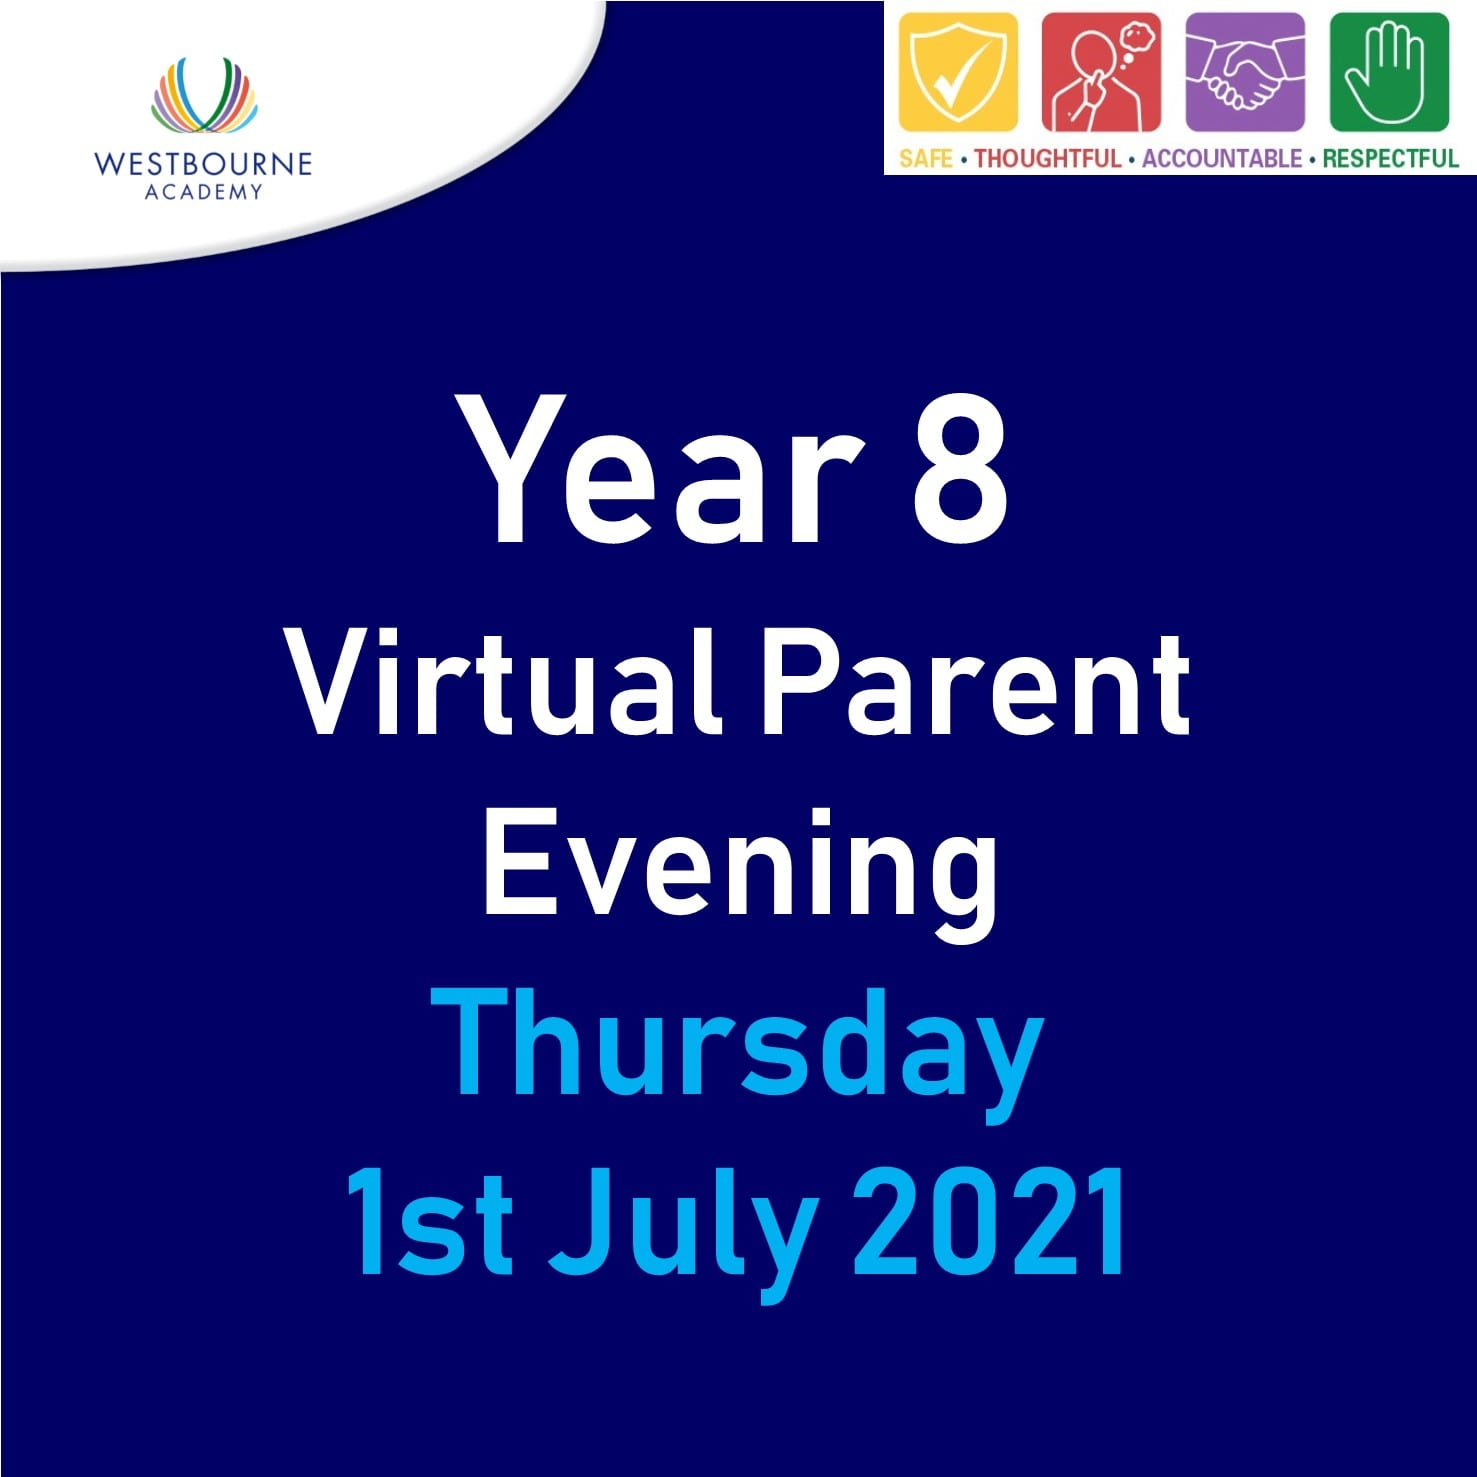 Year 8 Virtual Parent Evening 1st July 2021